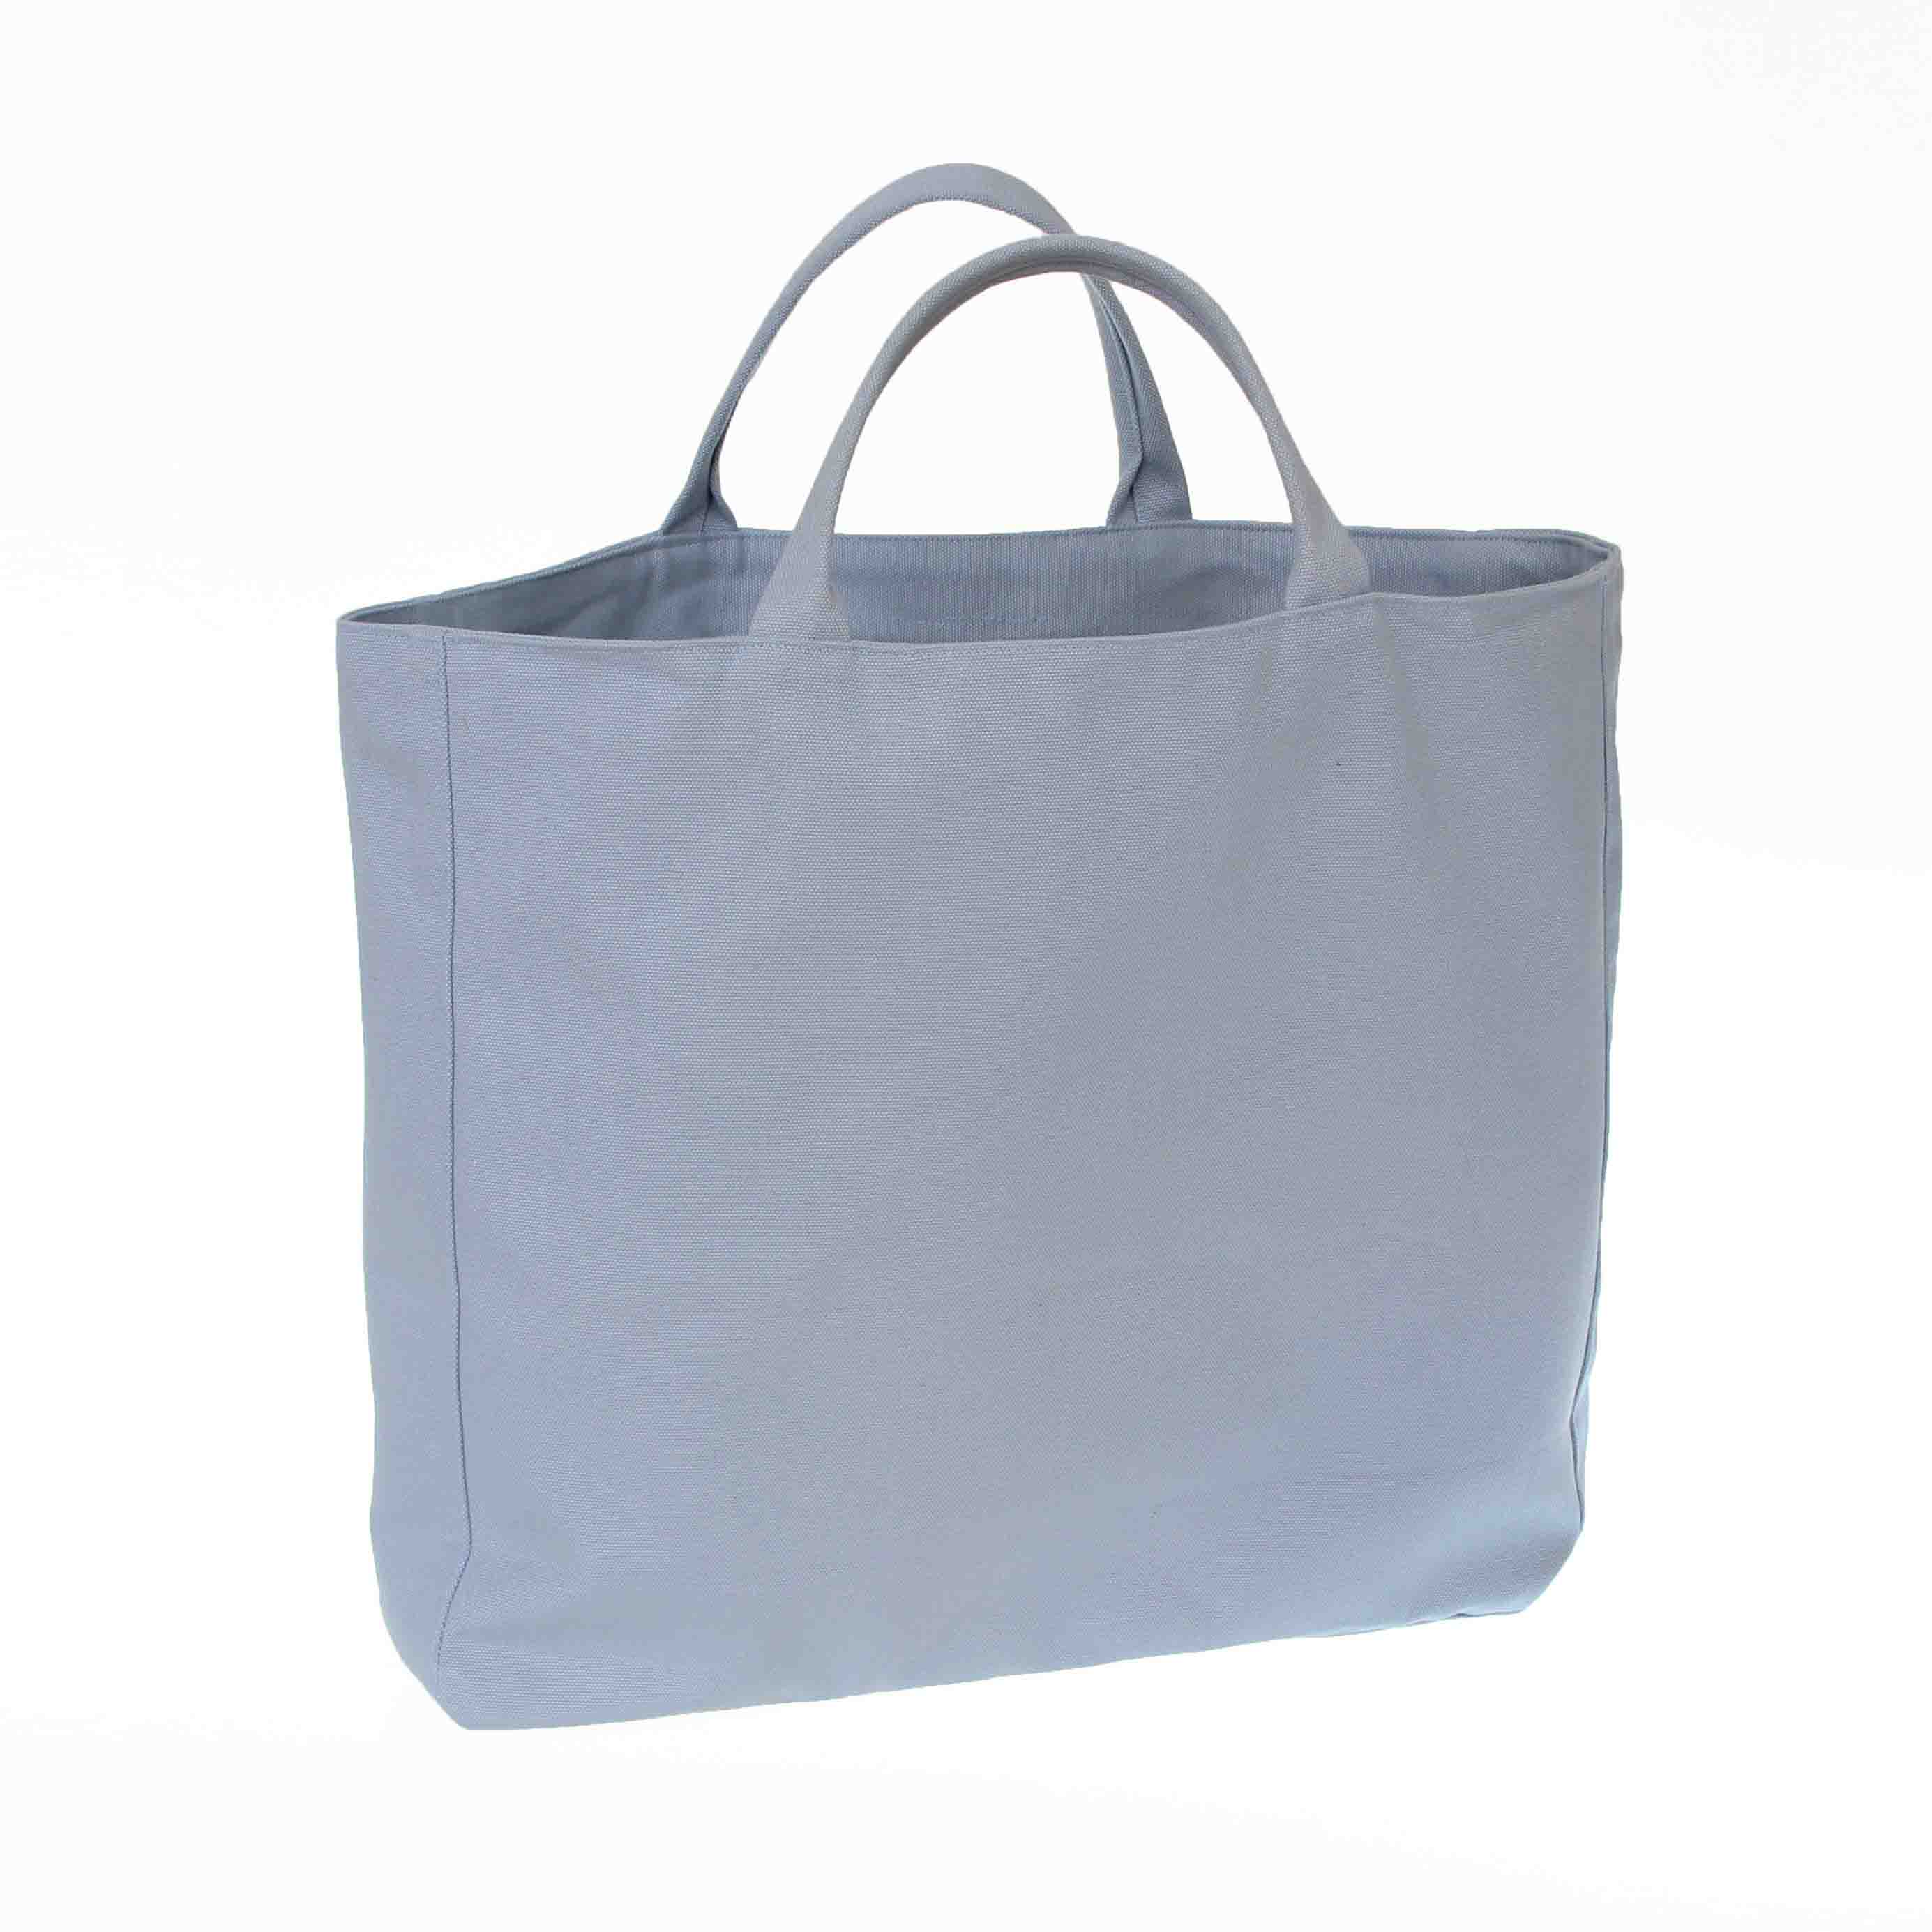 Cotton Canvas Totes - Made to Order